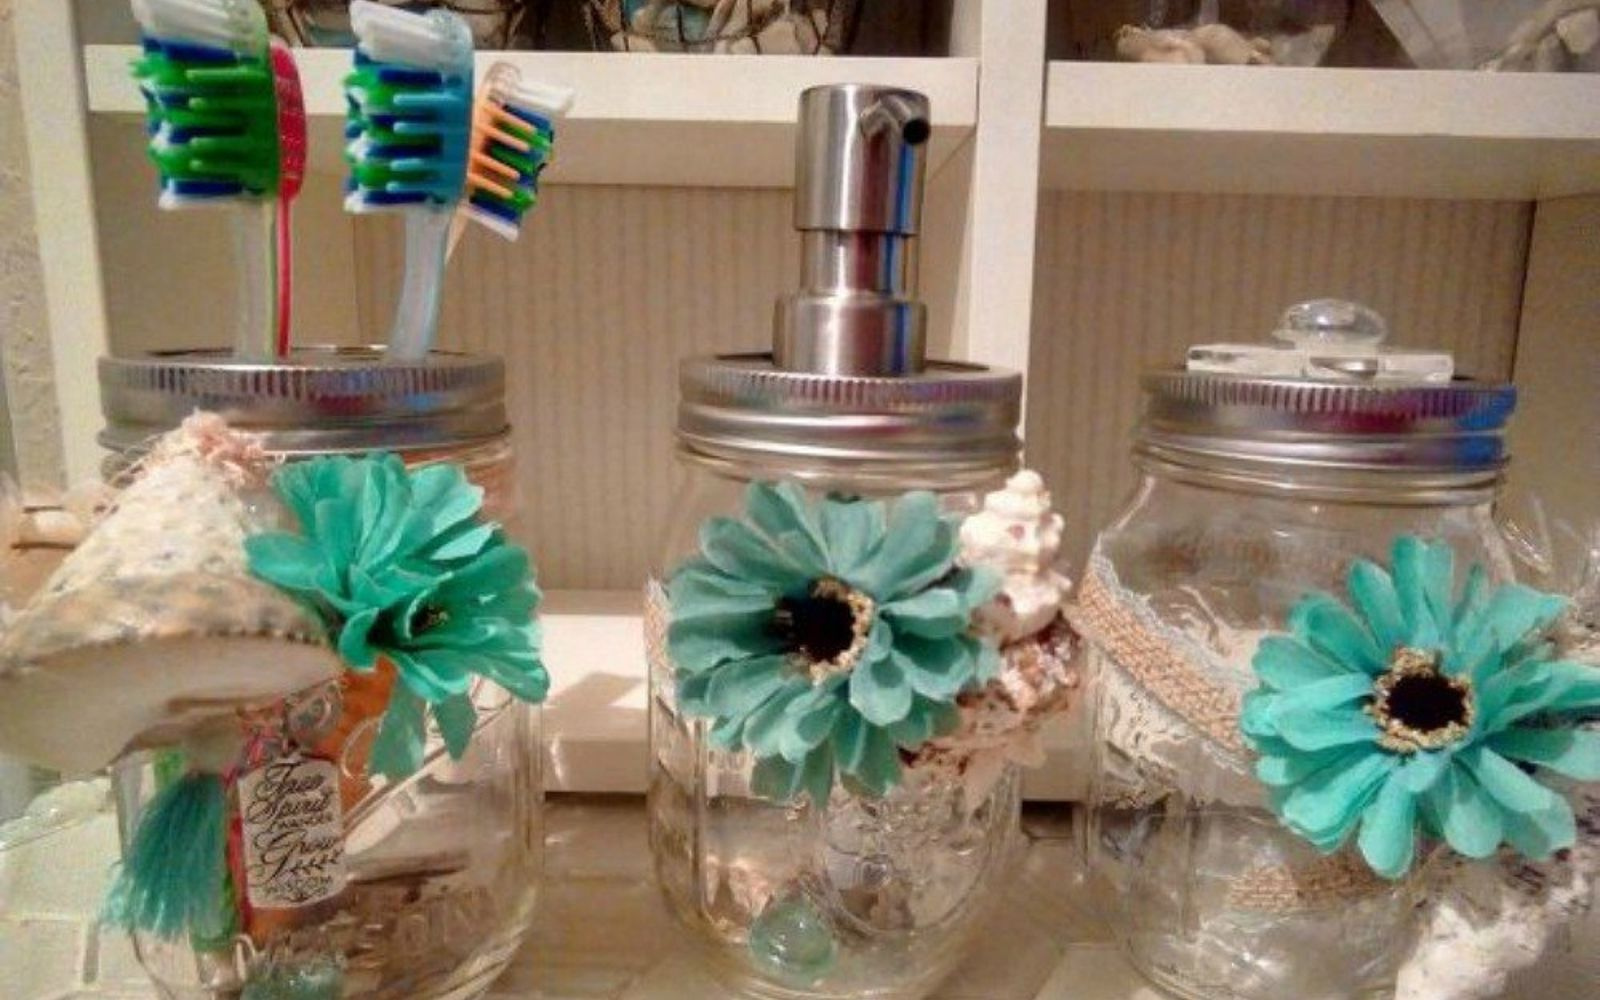 s 14 exciting mason jar ideas you just have to try, mason jars, 13 The coastal bathroom containers